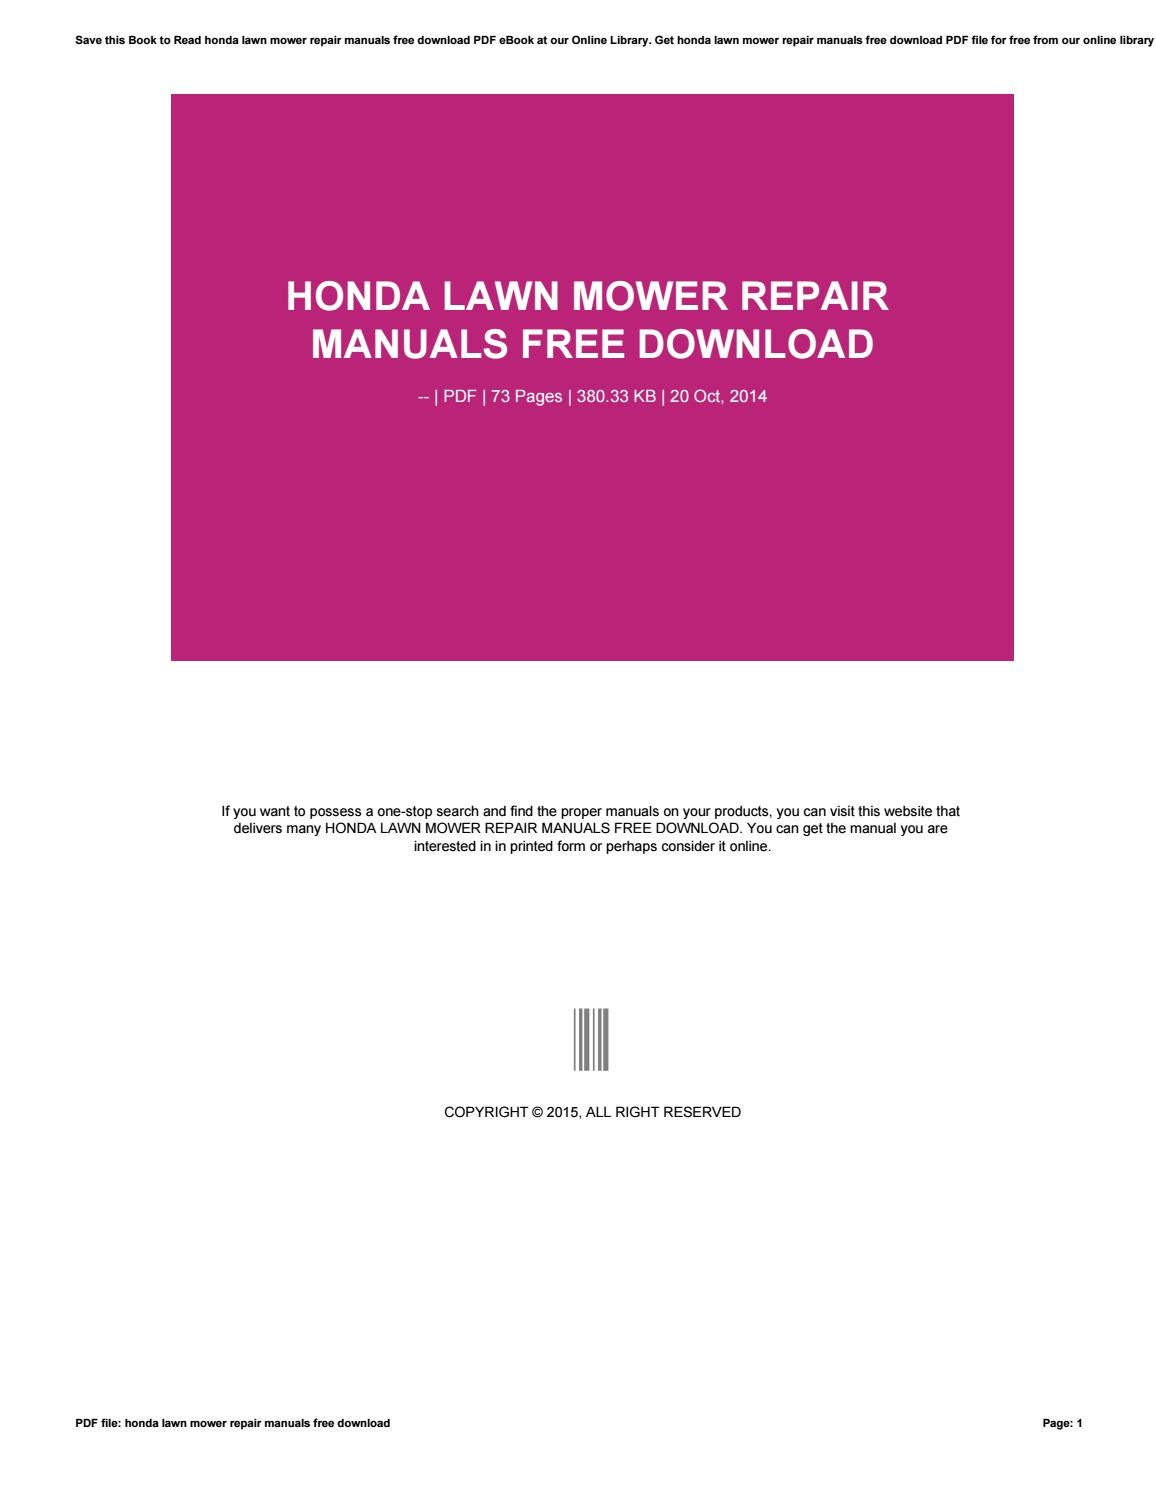 Honda lawn mower repair manuals free download by lilis10novitasari - issuu